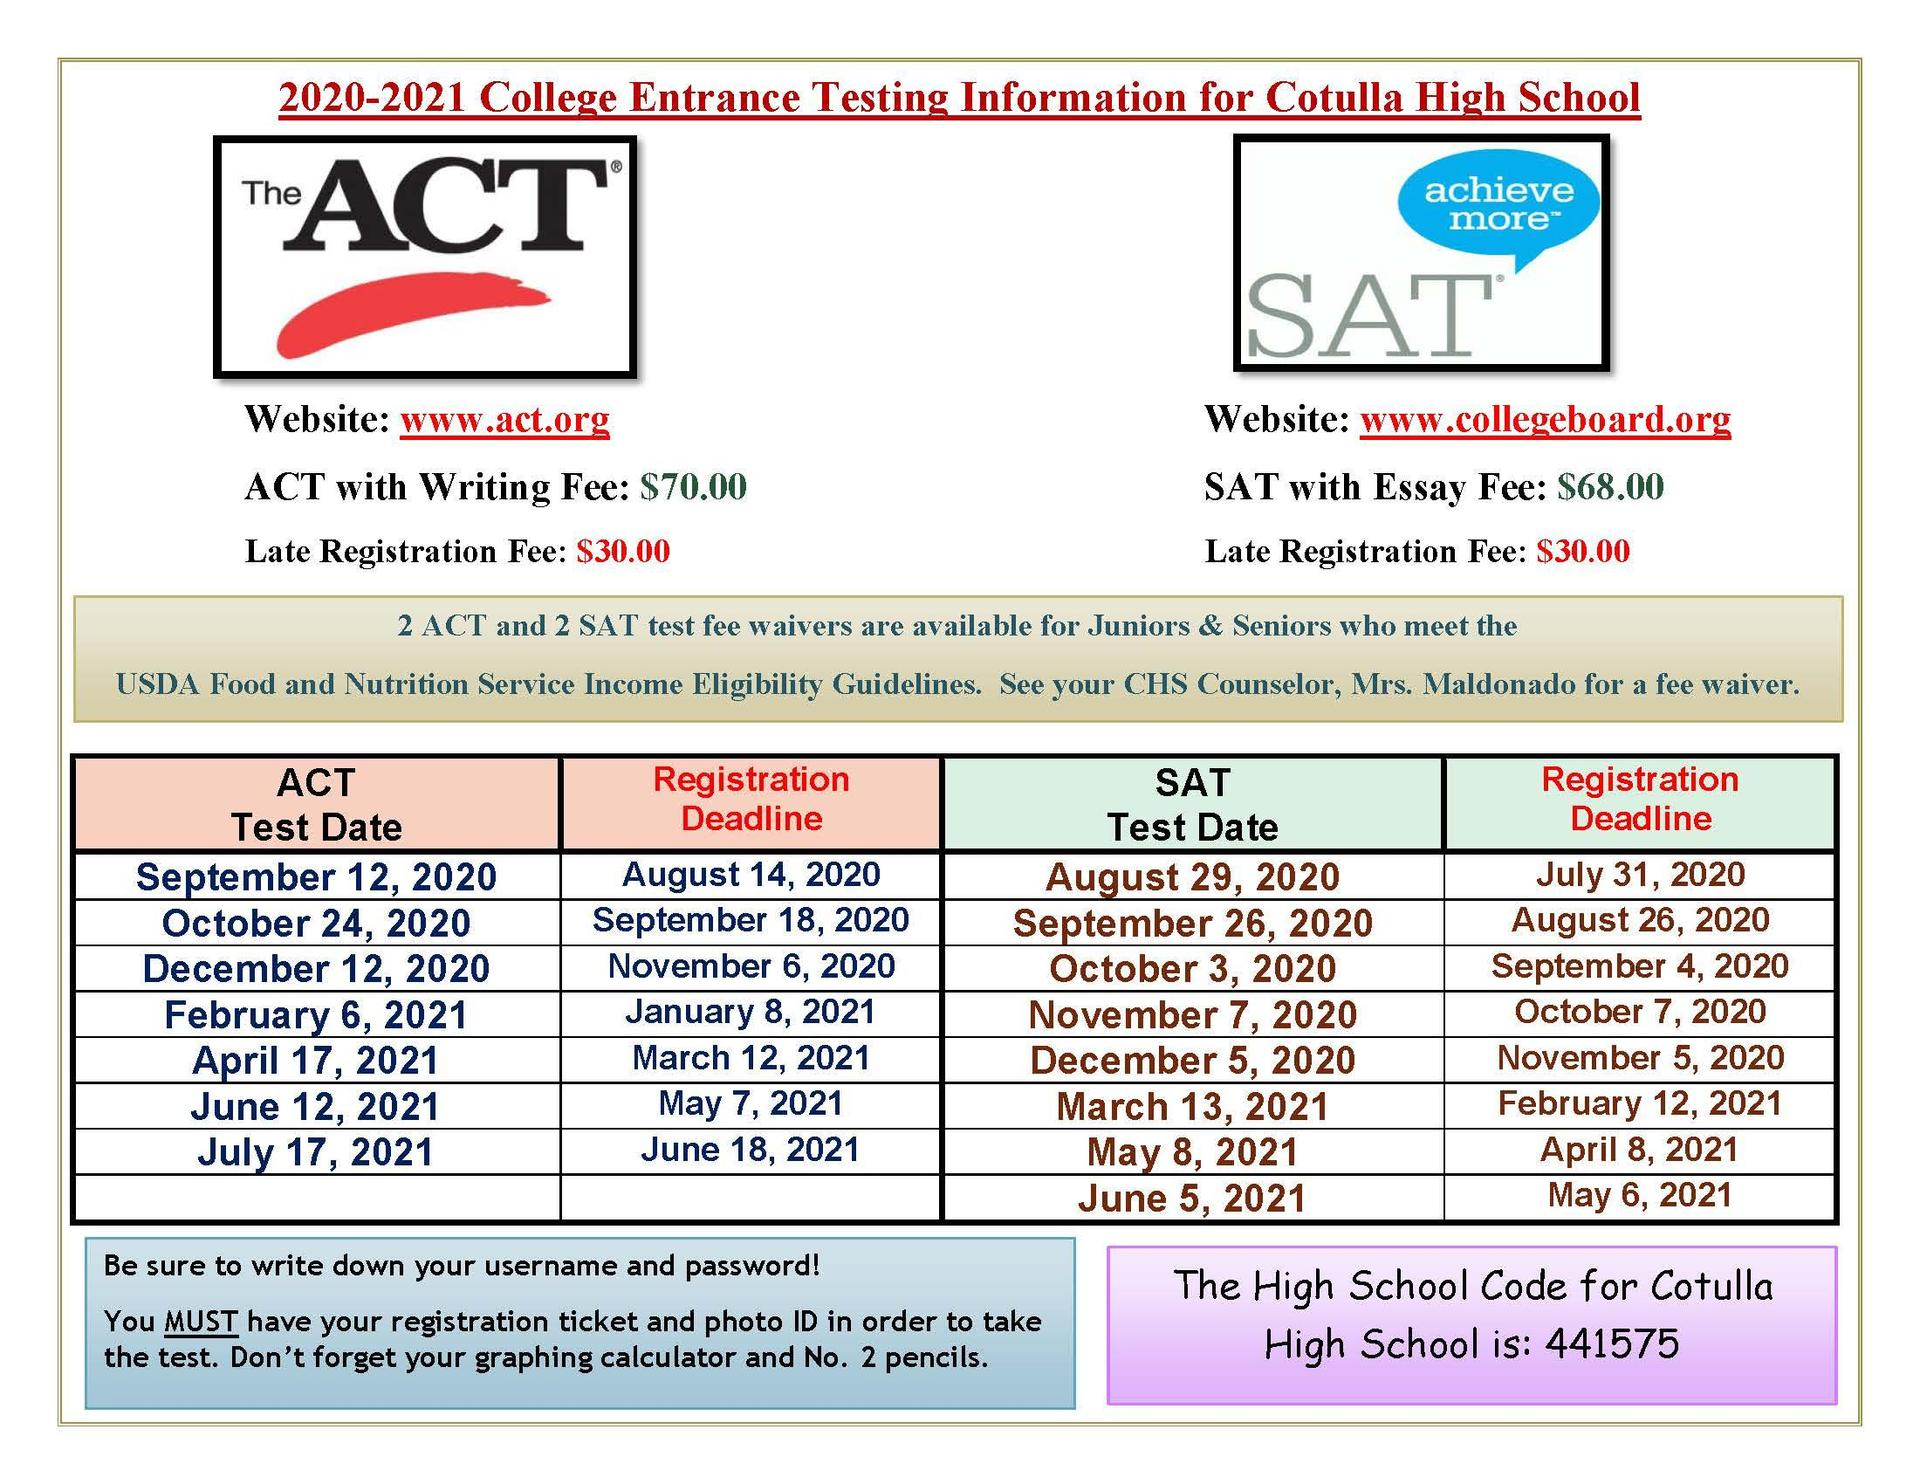 2020-2021 ACT and SAT test dates